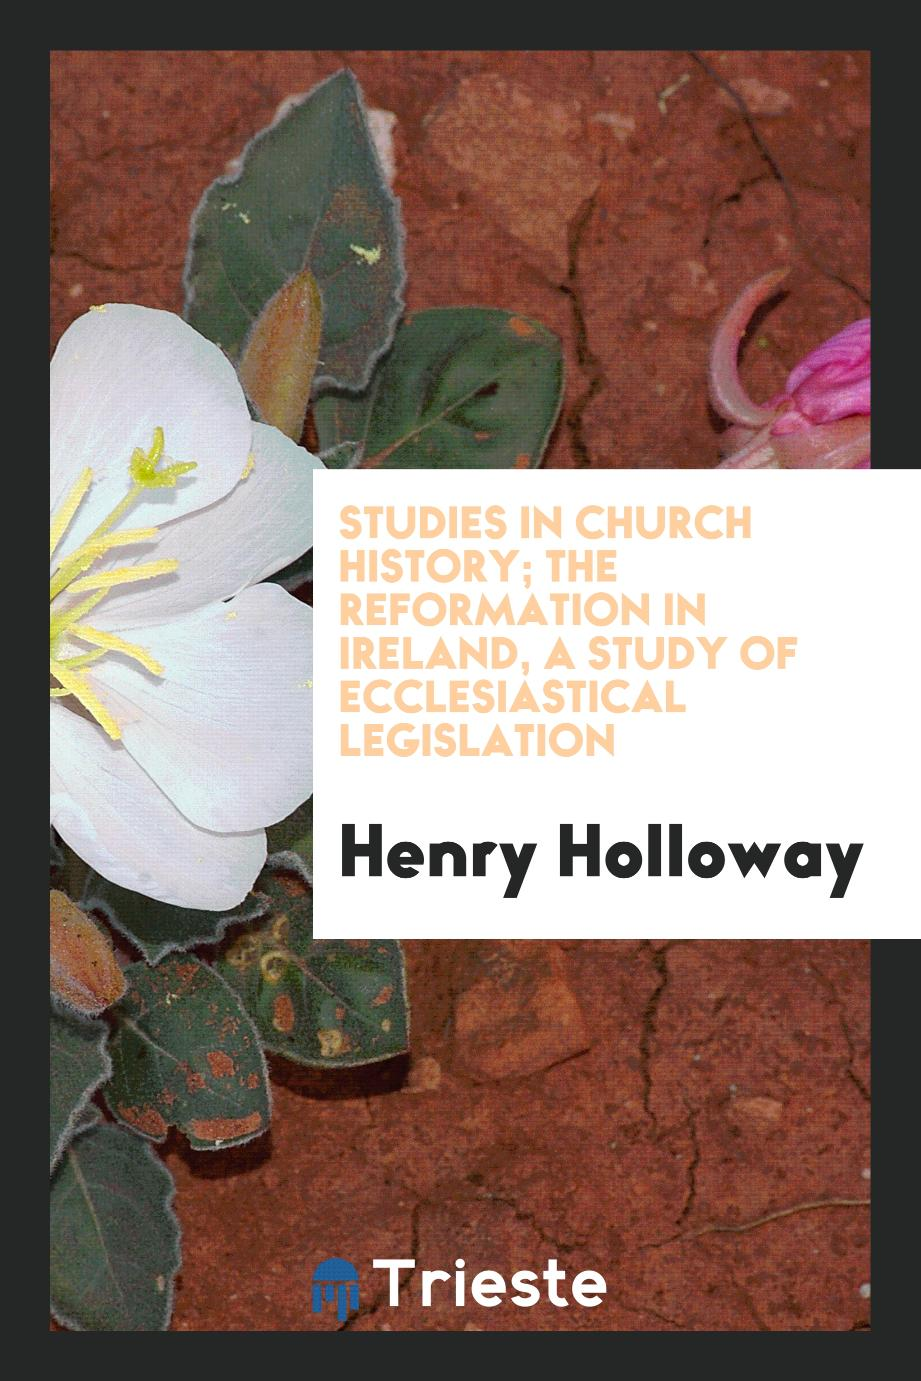 Studies in Church History; The Reformation in Ireland, a Study of Ecclesiastical Legislation